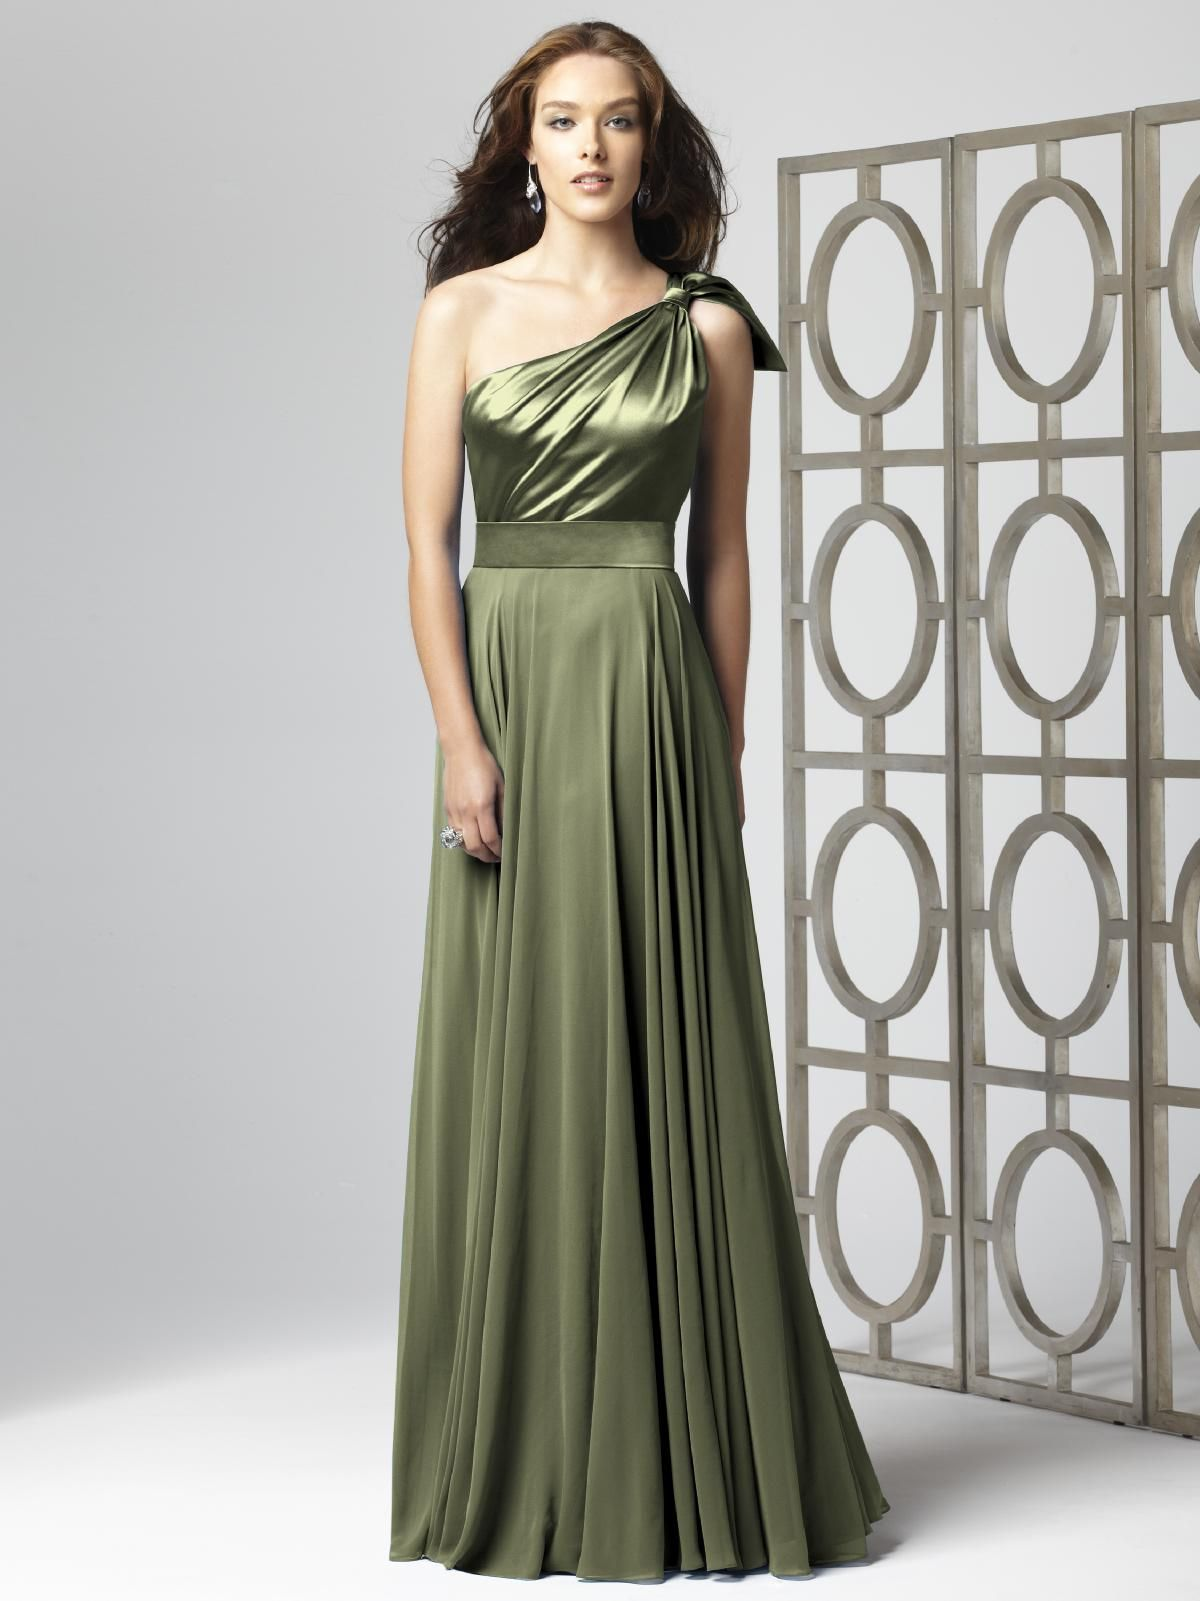 Dessy 2861 in moss green wedding pinterest wedding dessy bridesmaid 2861 one shoulder matte satin and lux chiffon full length dress with draped bodice and full skirt coordinating junior bridesmaid dress ombrellifo Image collections